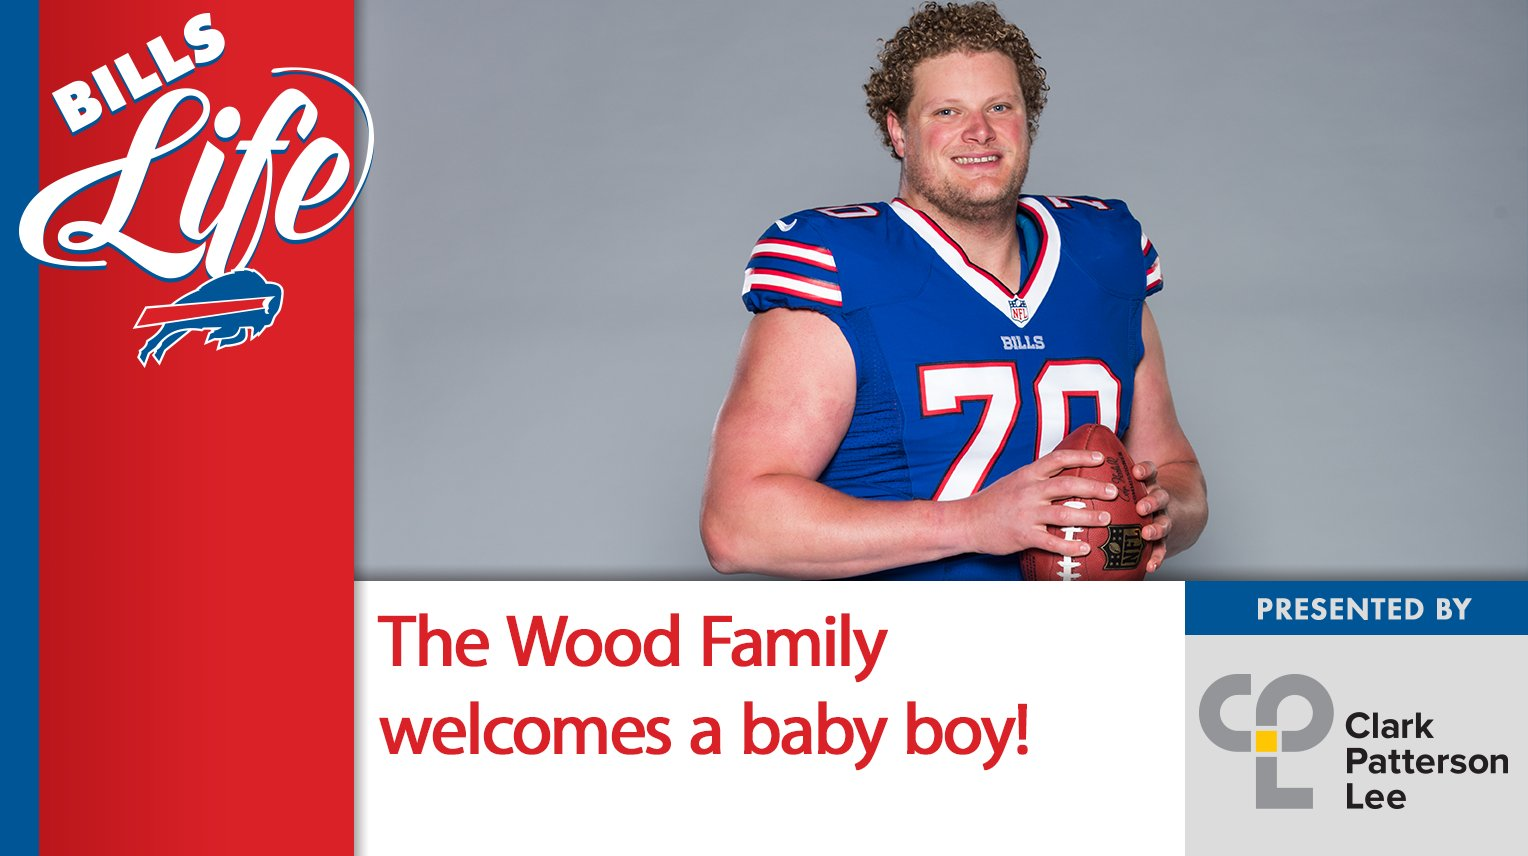 Congratulations to Eric Wood and his family on the birth of their baby boy!  Bills Life: https://t.co/7wK4gbMue1 https://t.co/L2MYFT2bN7